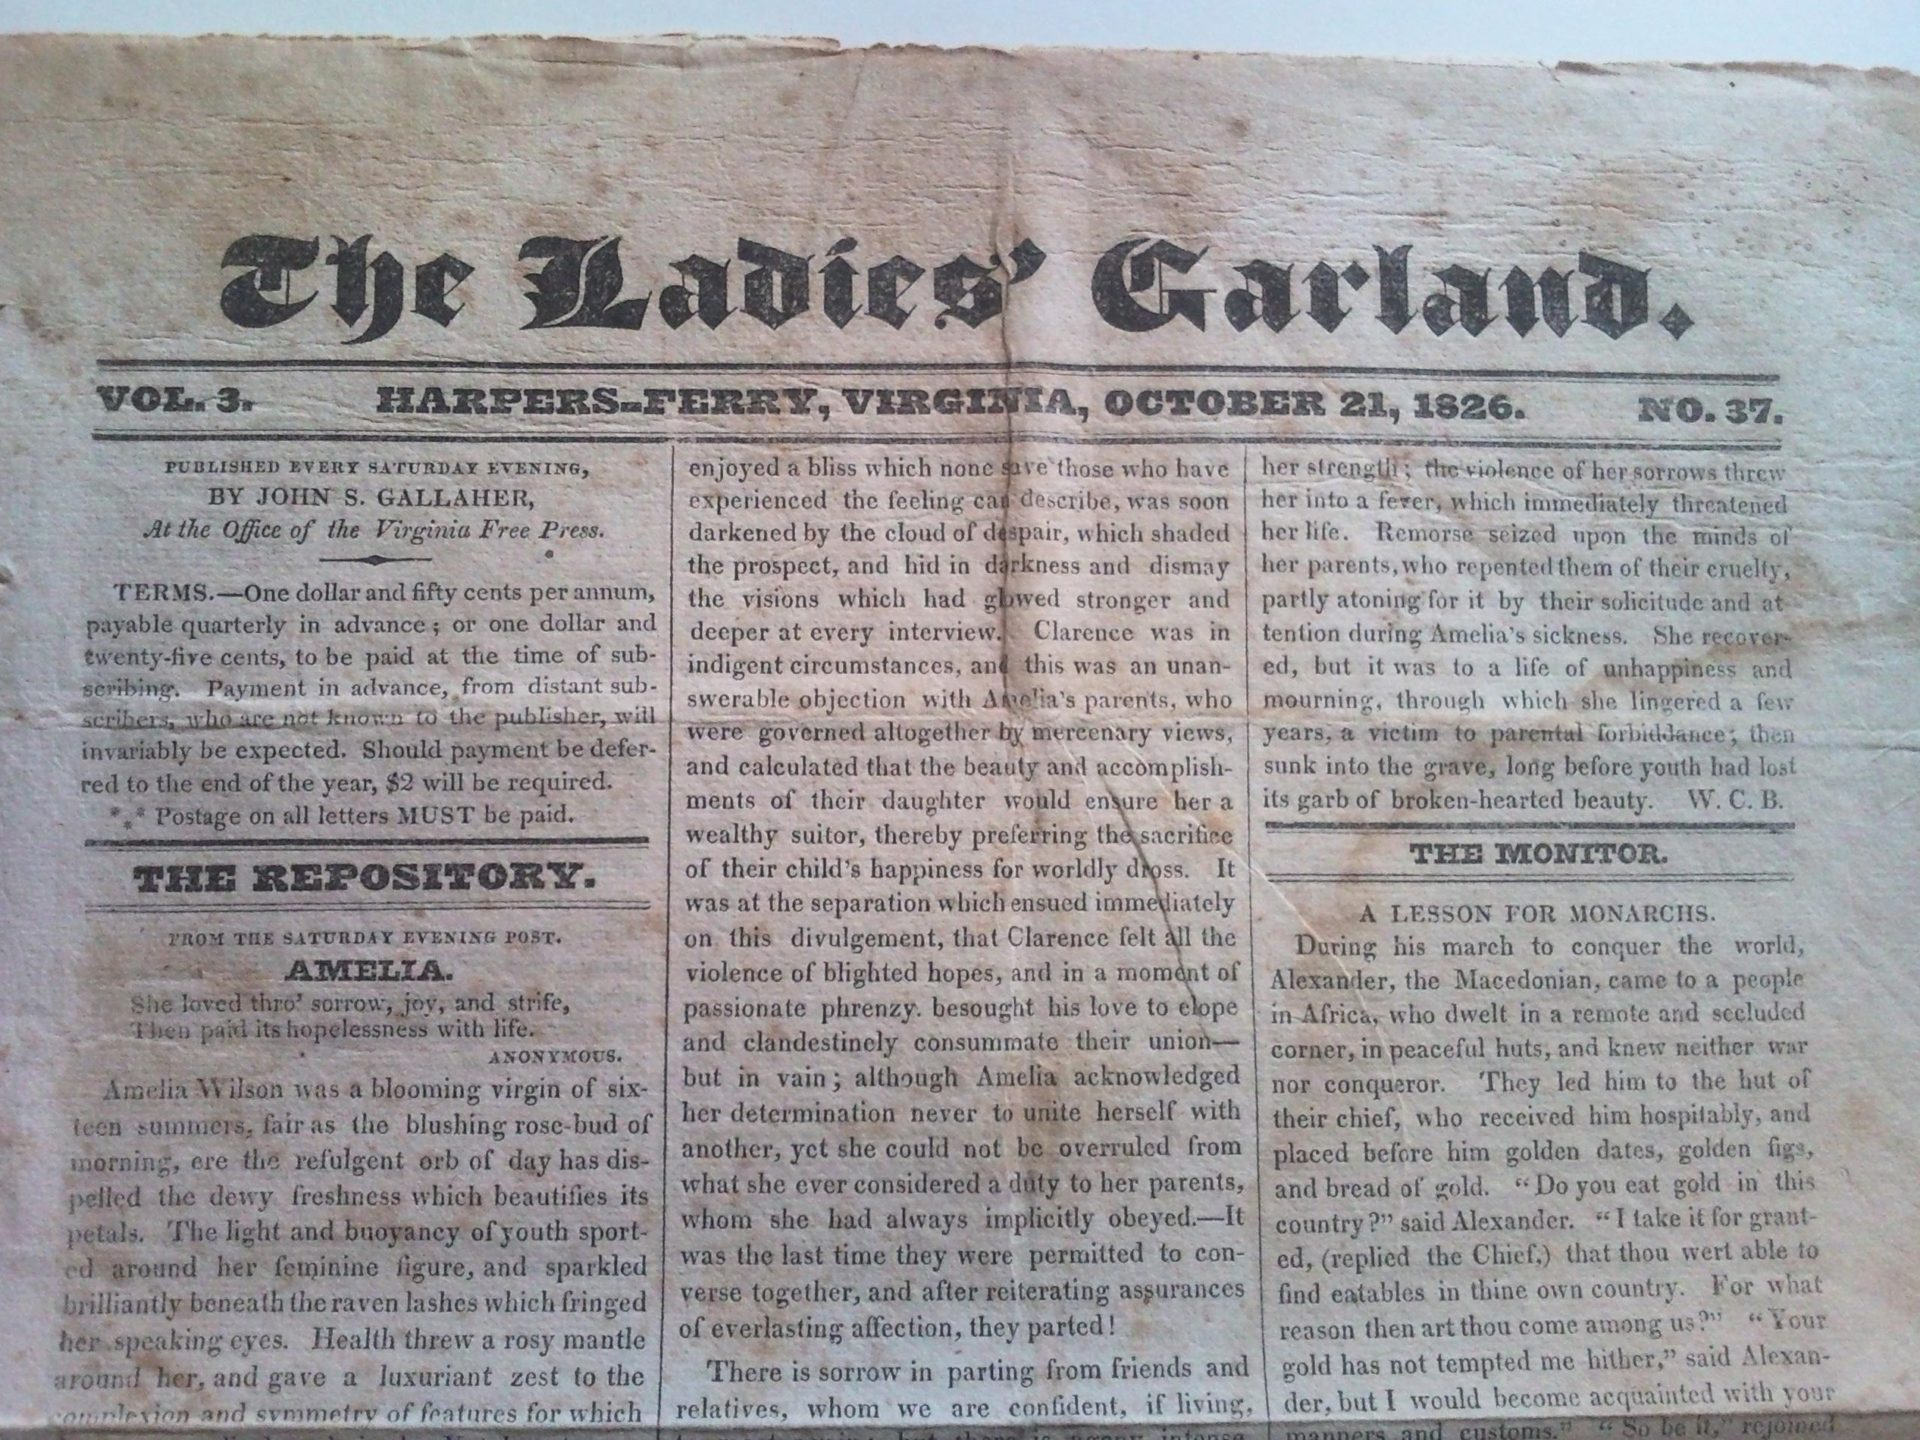 Front page of the newspaper the Ladies' Garland